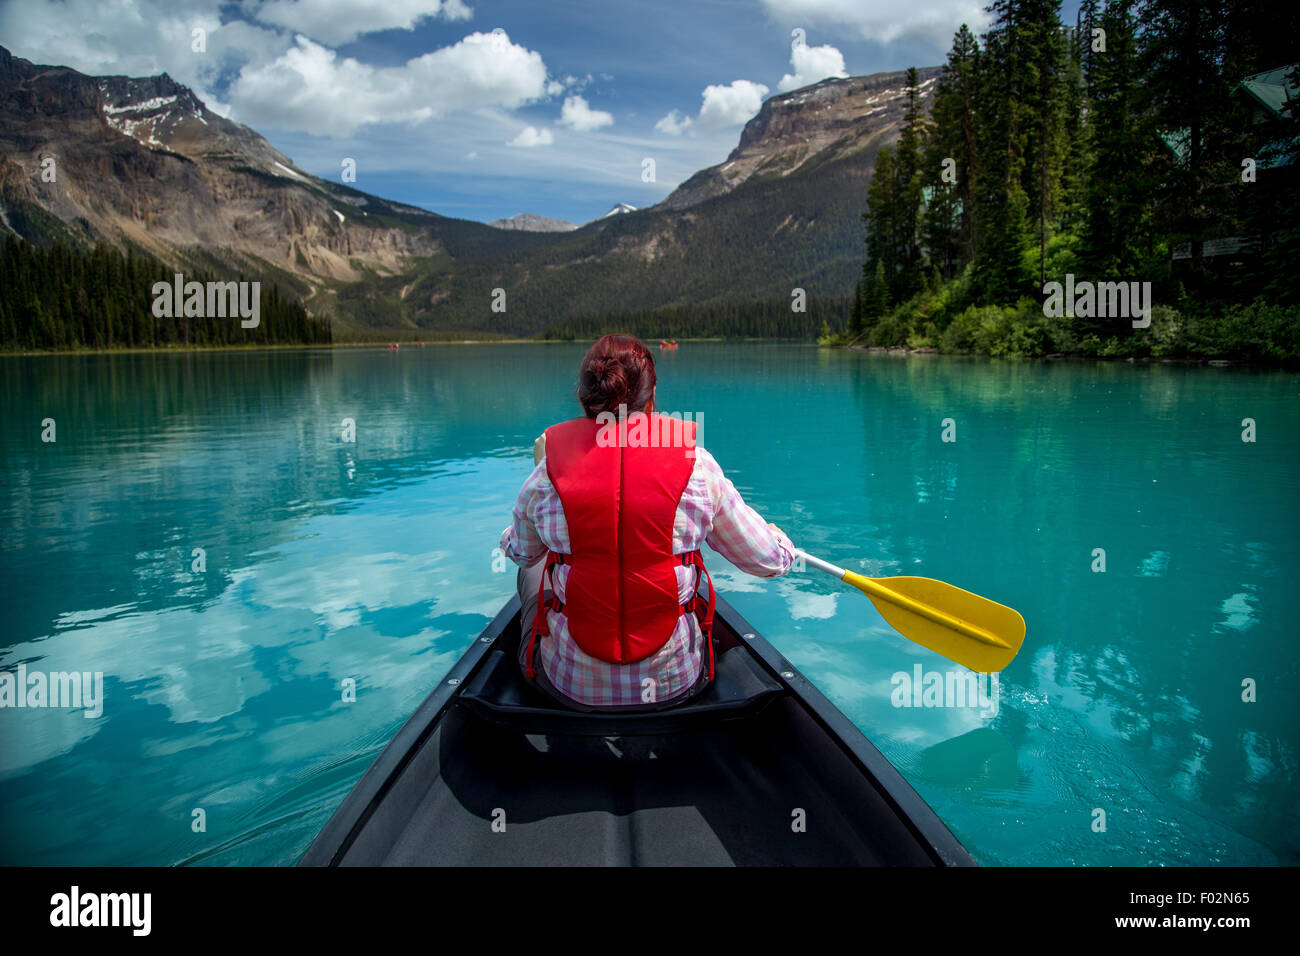 Frau in Emerald Lake, Yoho Nationalpark, Britisch-Kolumbien Kanada Kanu Stockbild